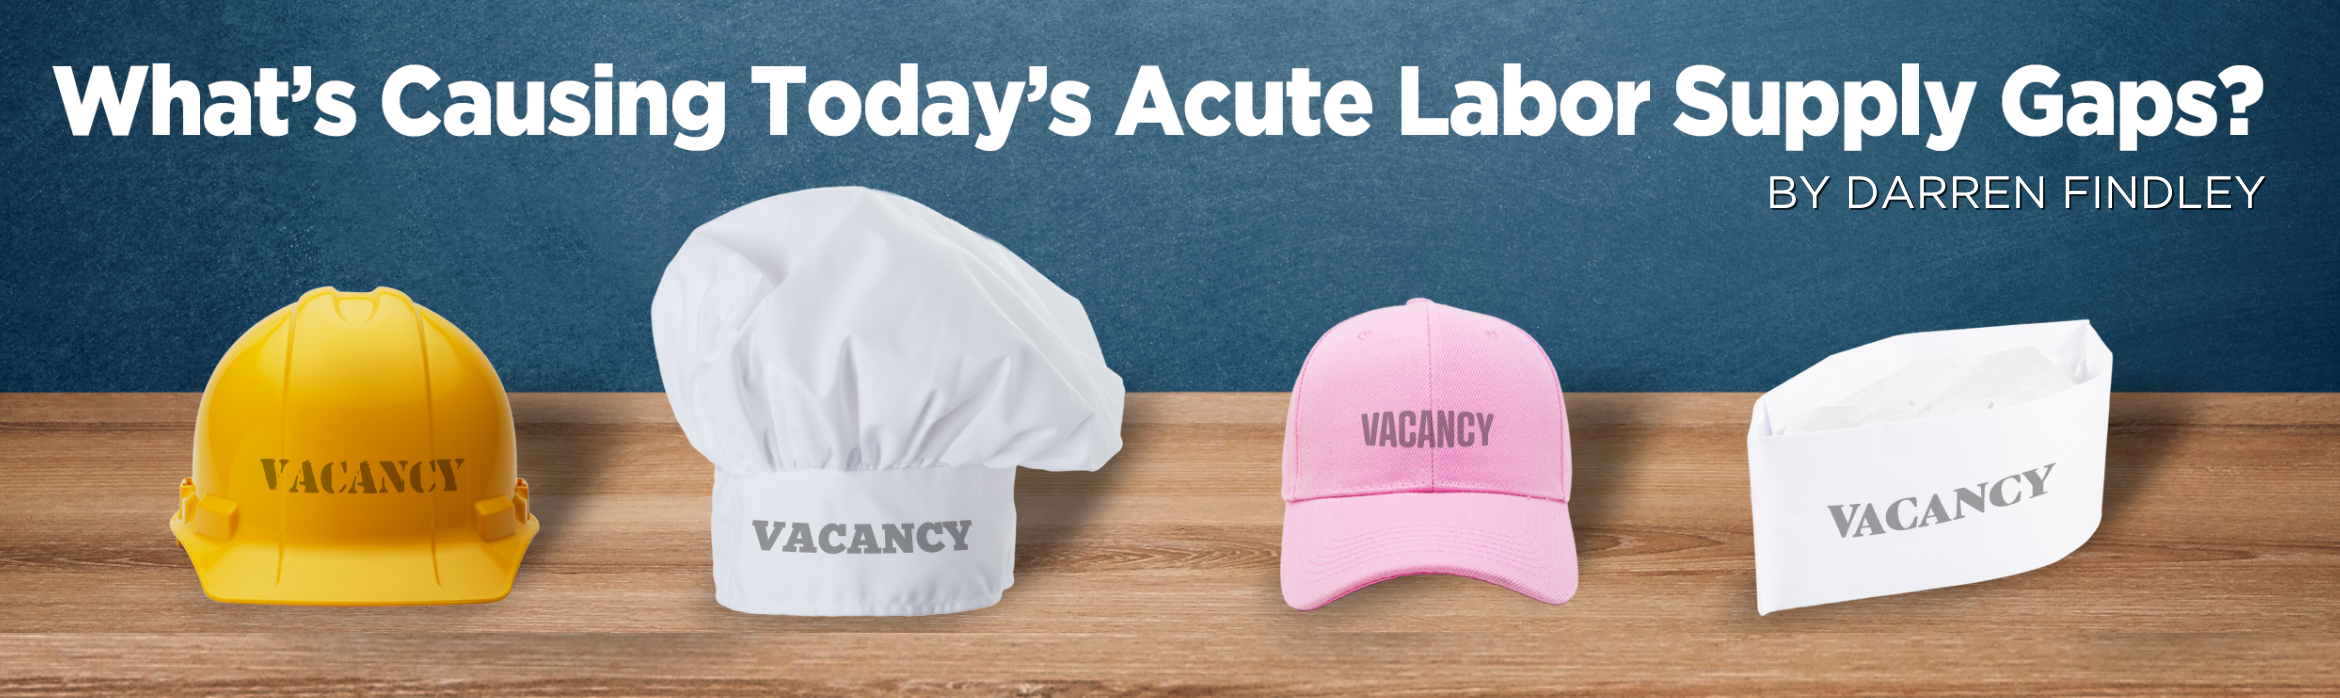 What's Causing Today's Acute Labor Supply Gaps?